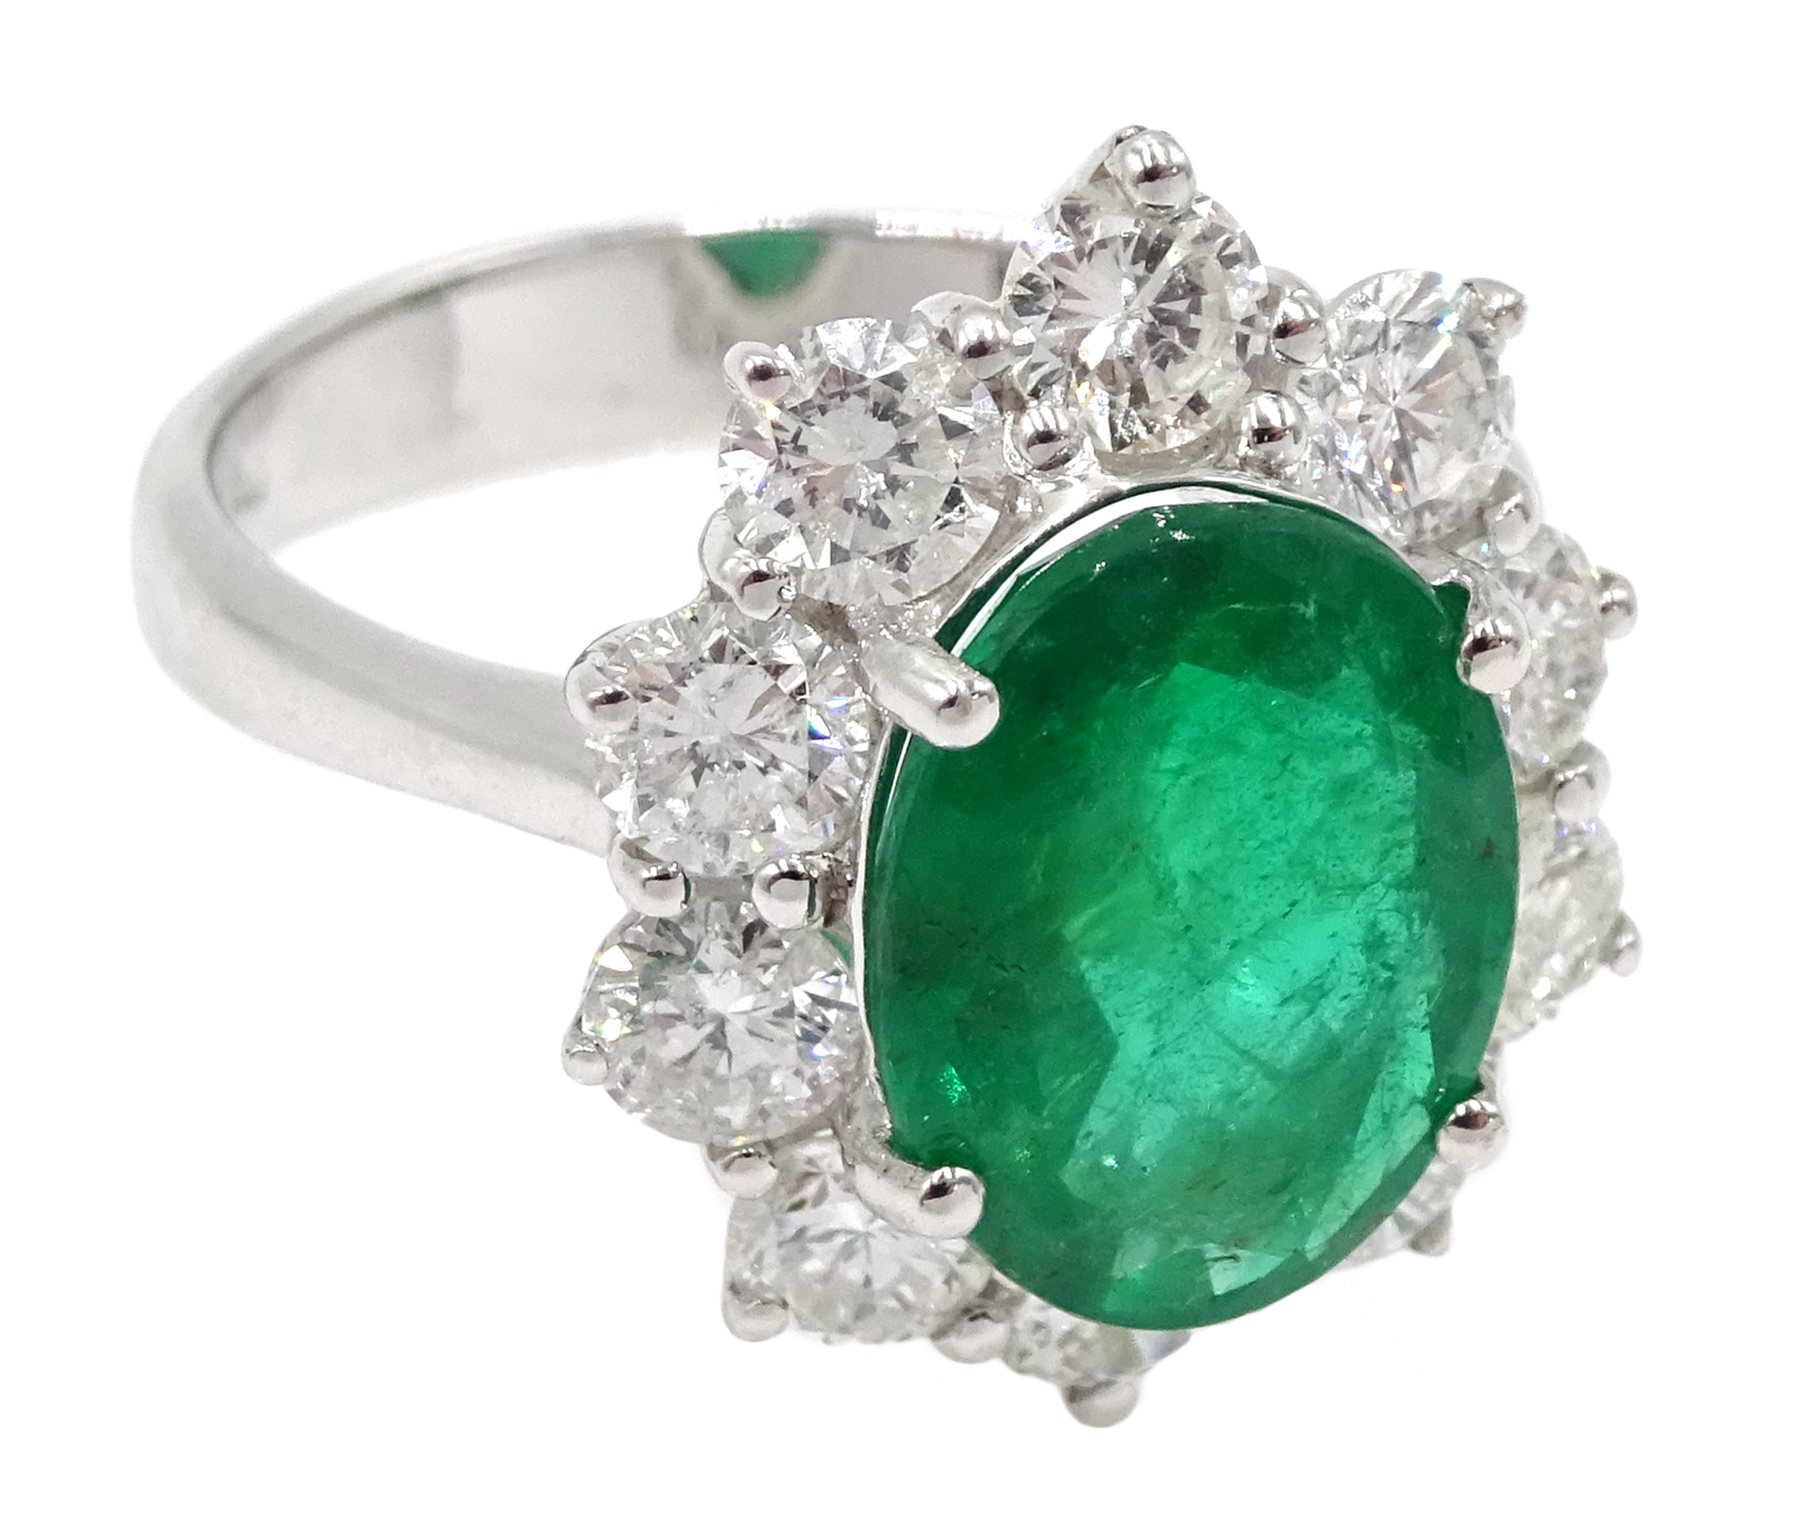 White gold oval emerald and round brilliant cut diamond ring - Image 3 of 5